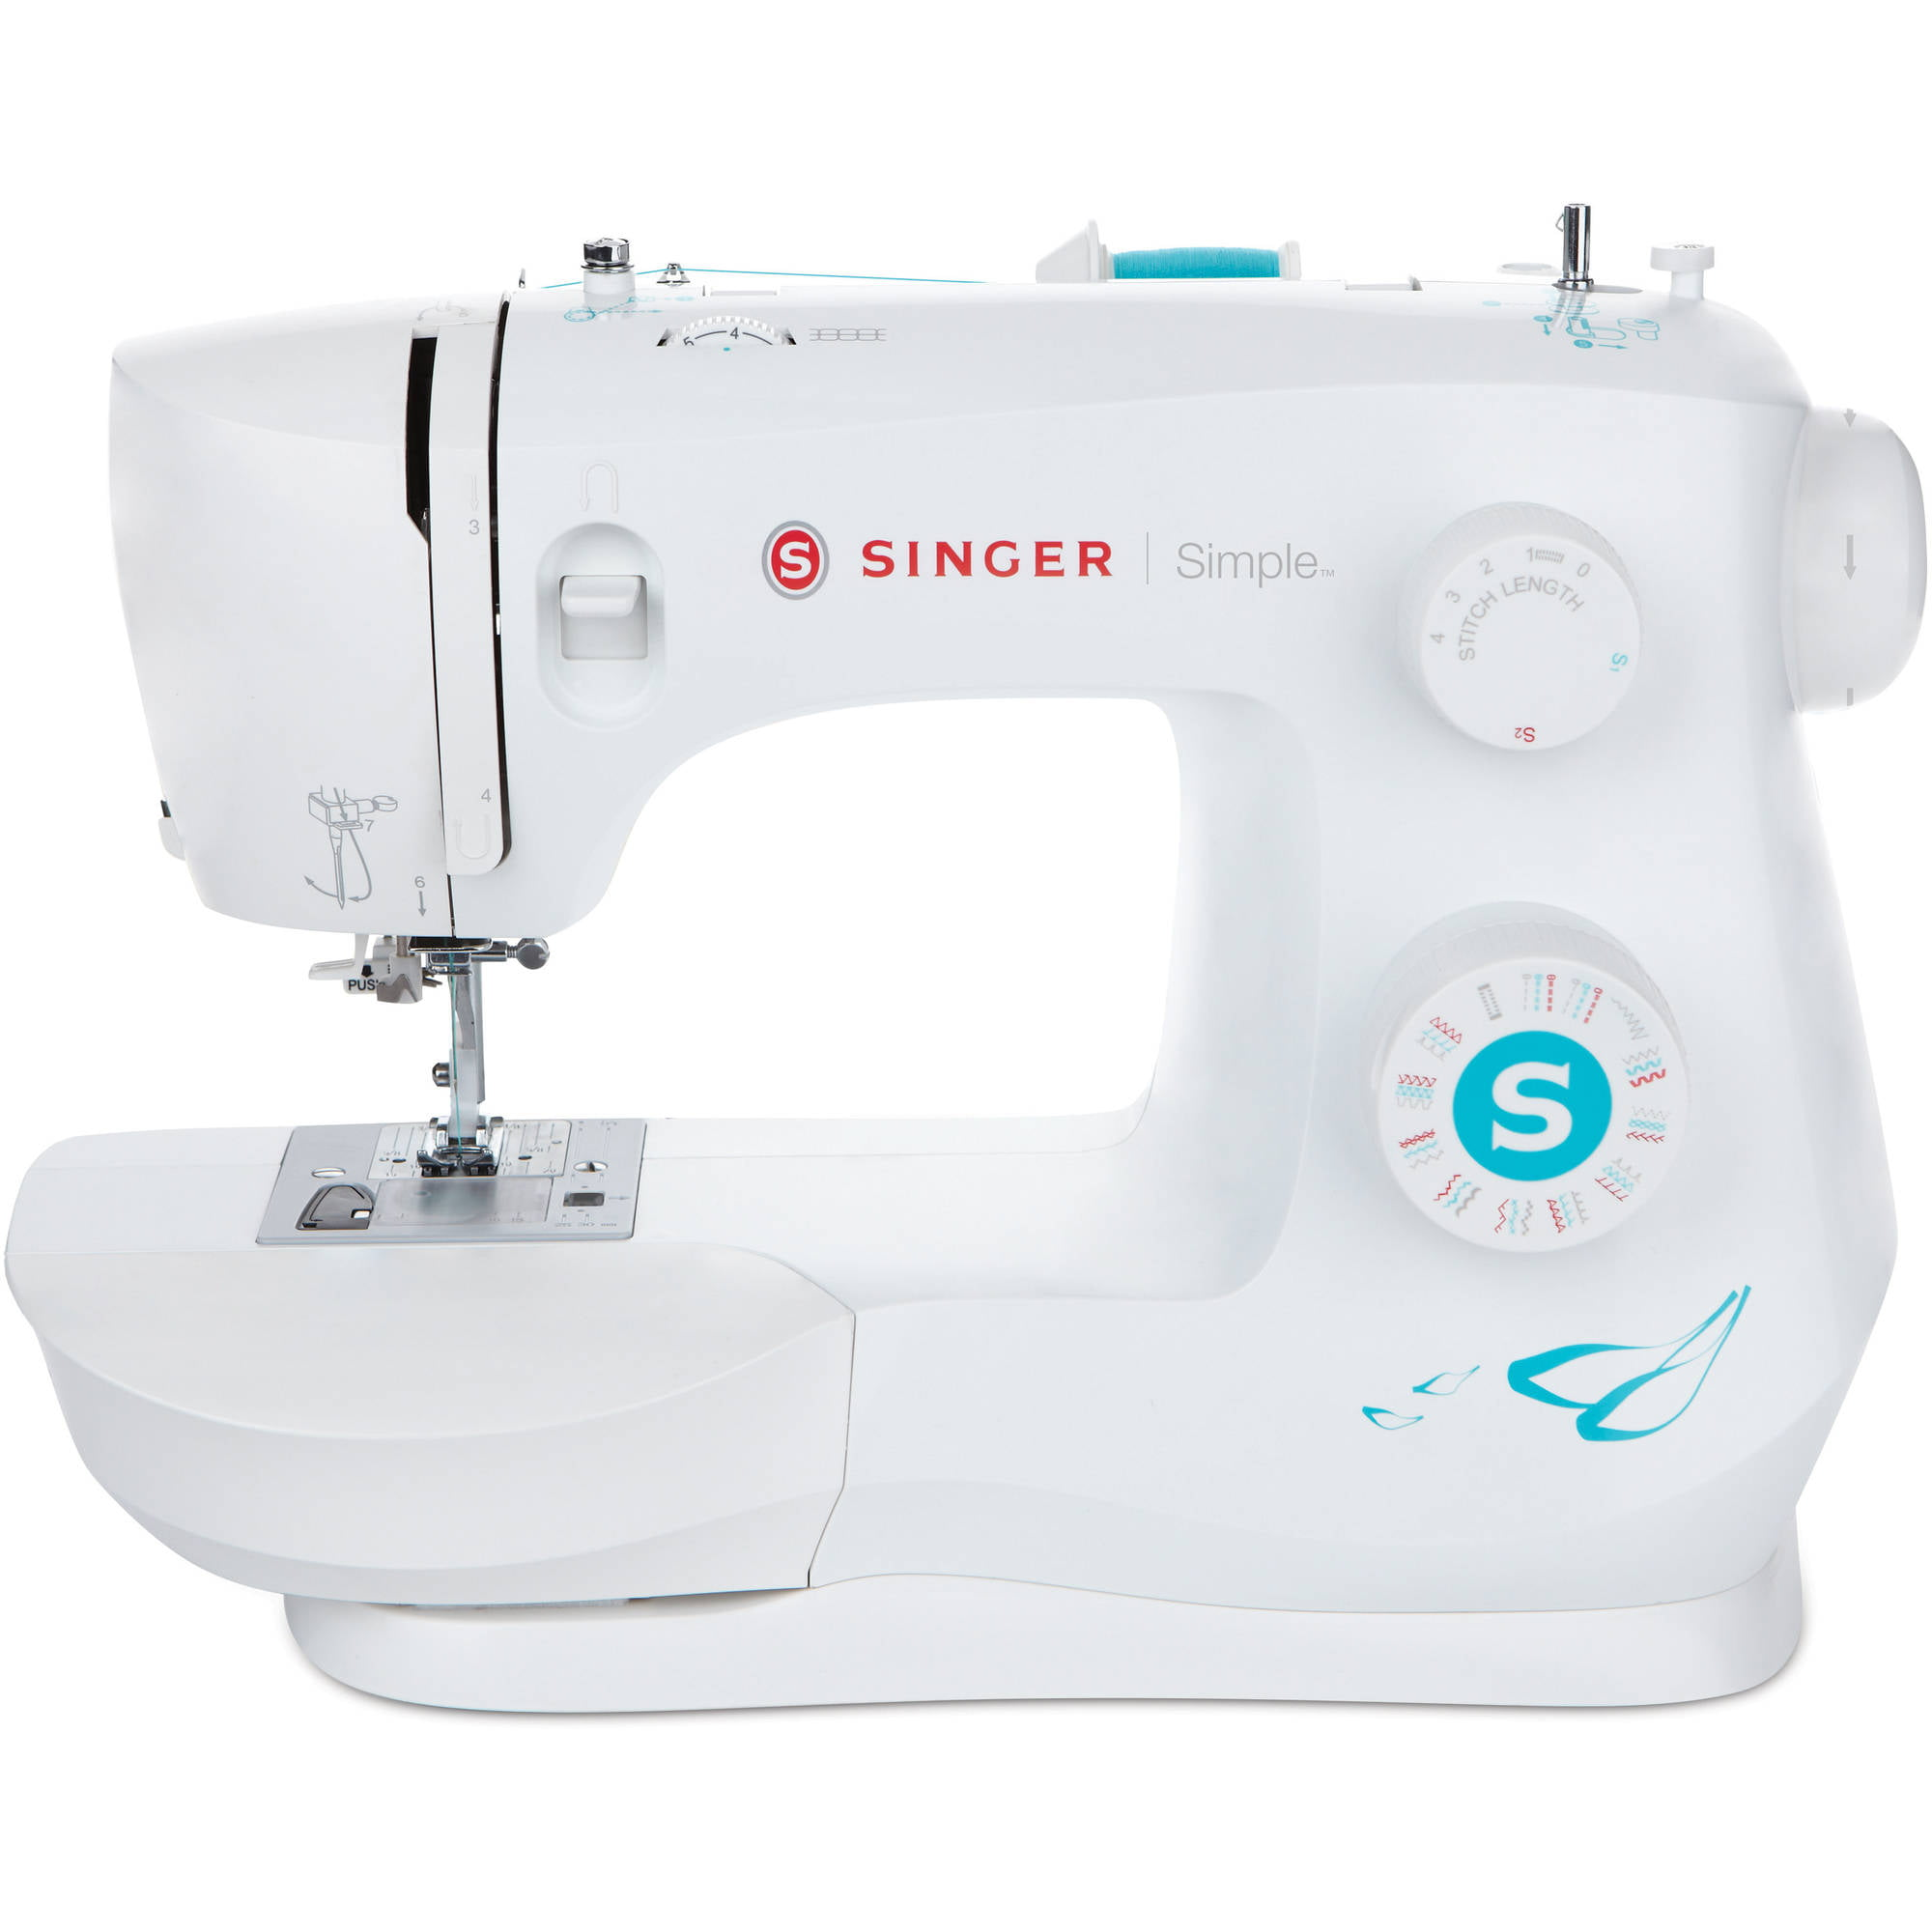 With a reliable sewing machine in your home, you'll be able to extend the life of a favorite pair of jeans, create a cozy blanket and much more. Sears is here to help you sew on a simple button or create an entire garment with a new sewing machine.